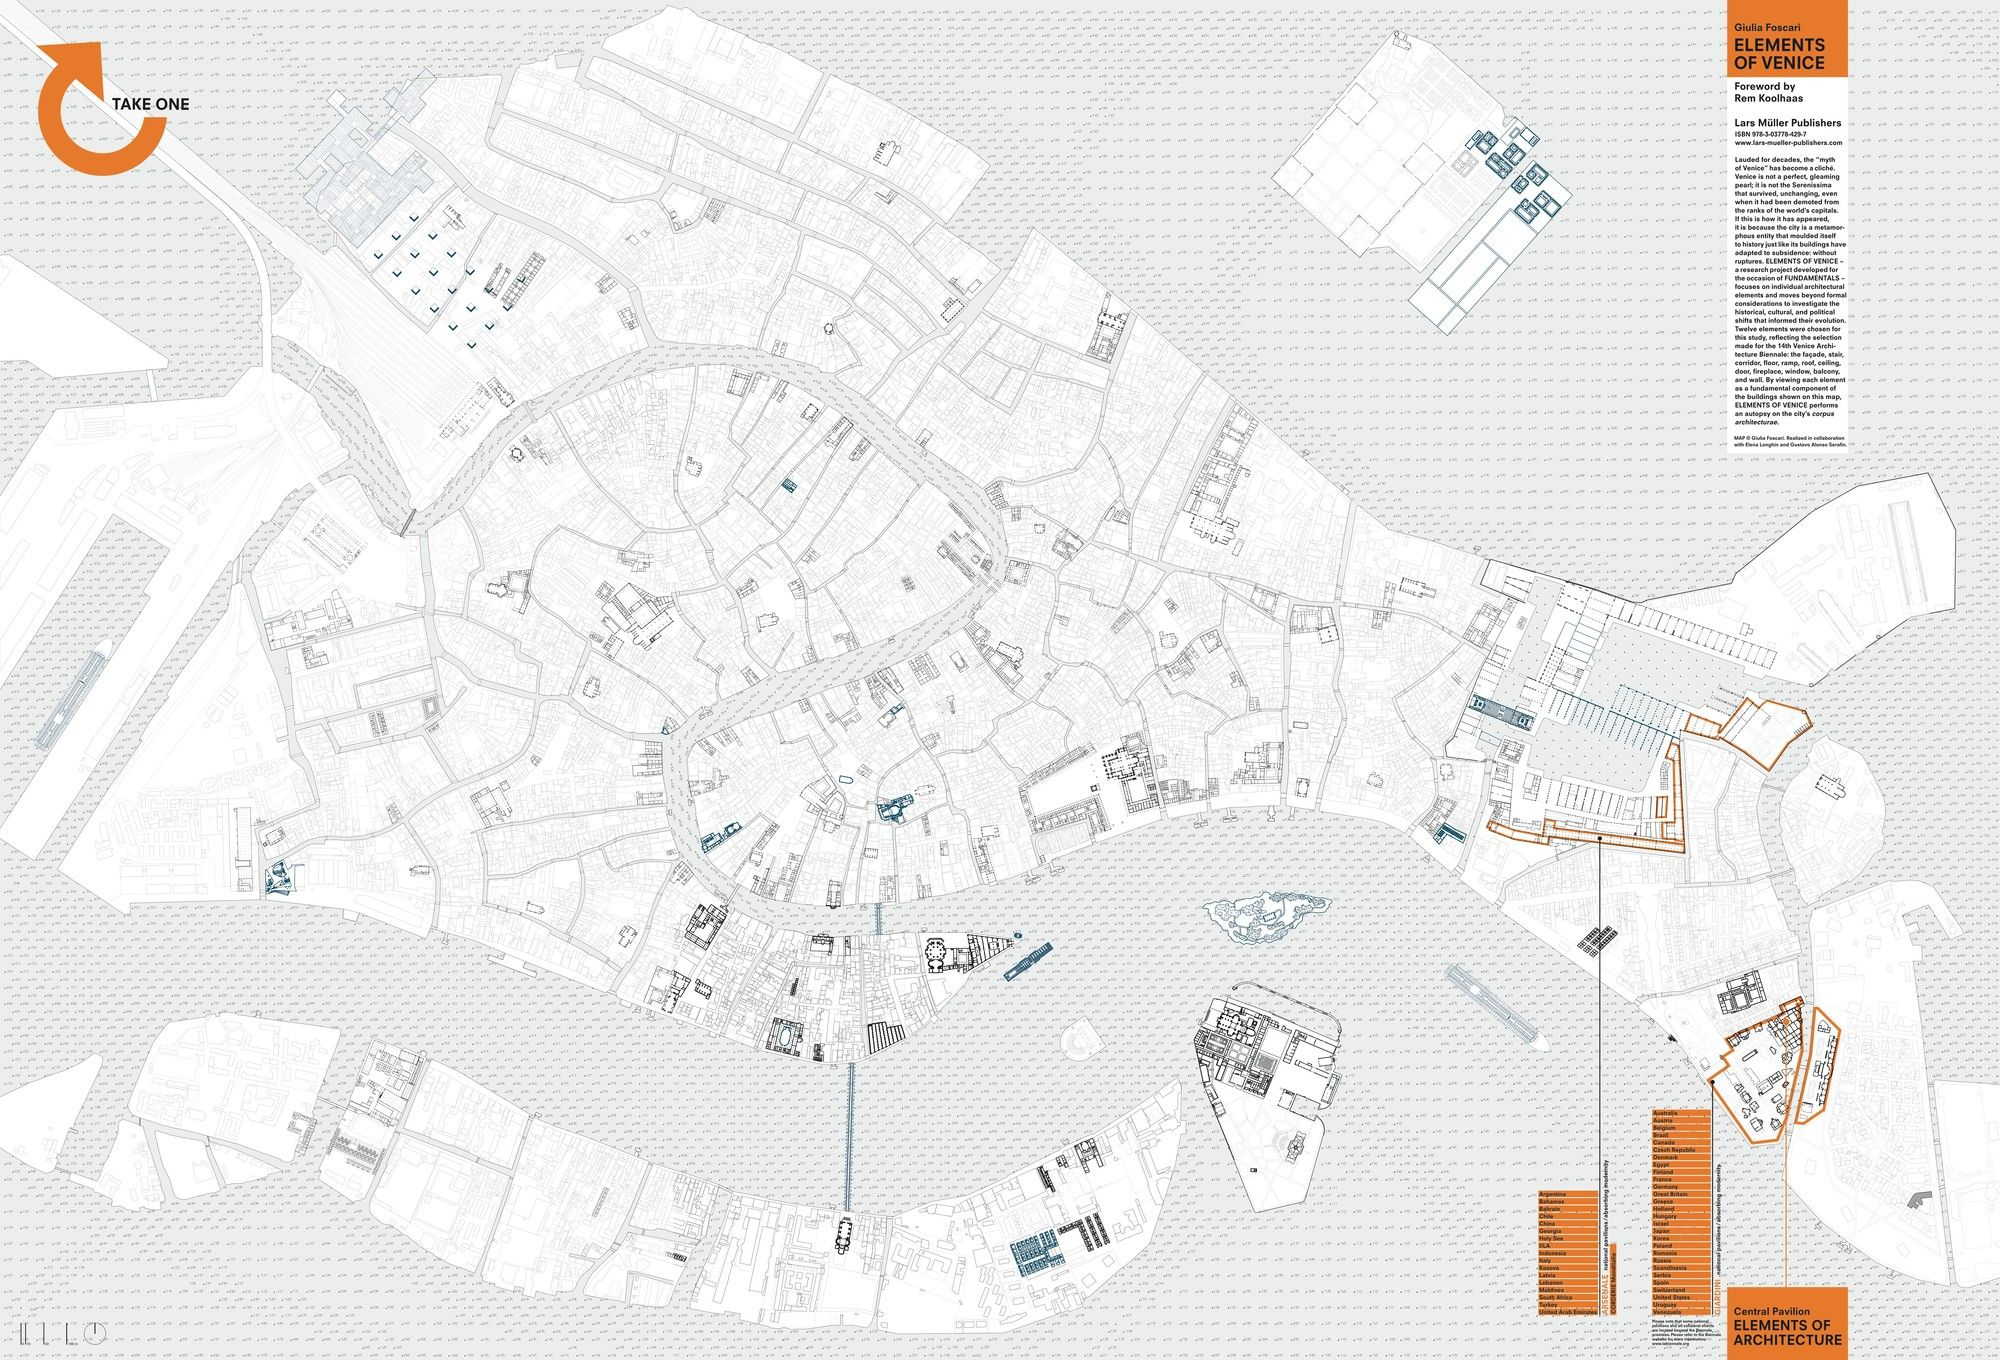 Venice Arsenale Italy Map Google Search Pavillion For The - Venice biennale 2016 map